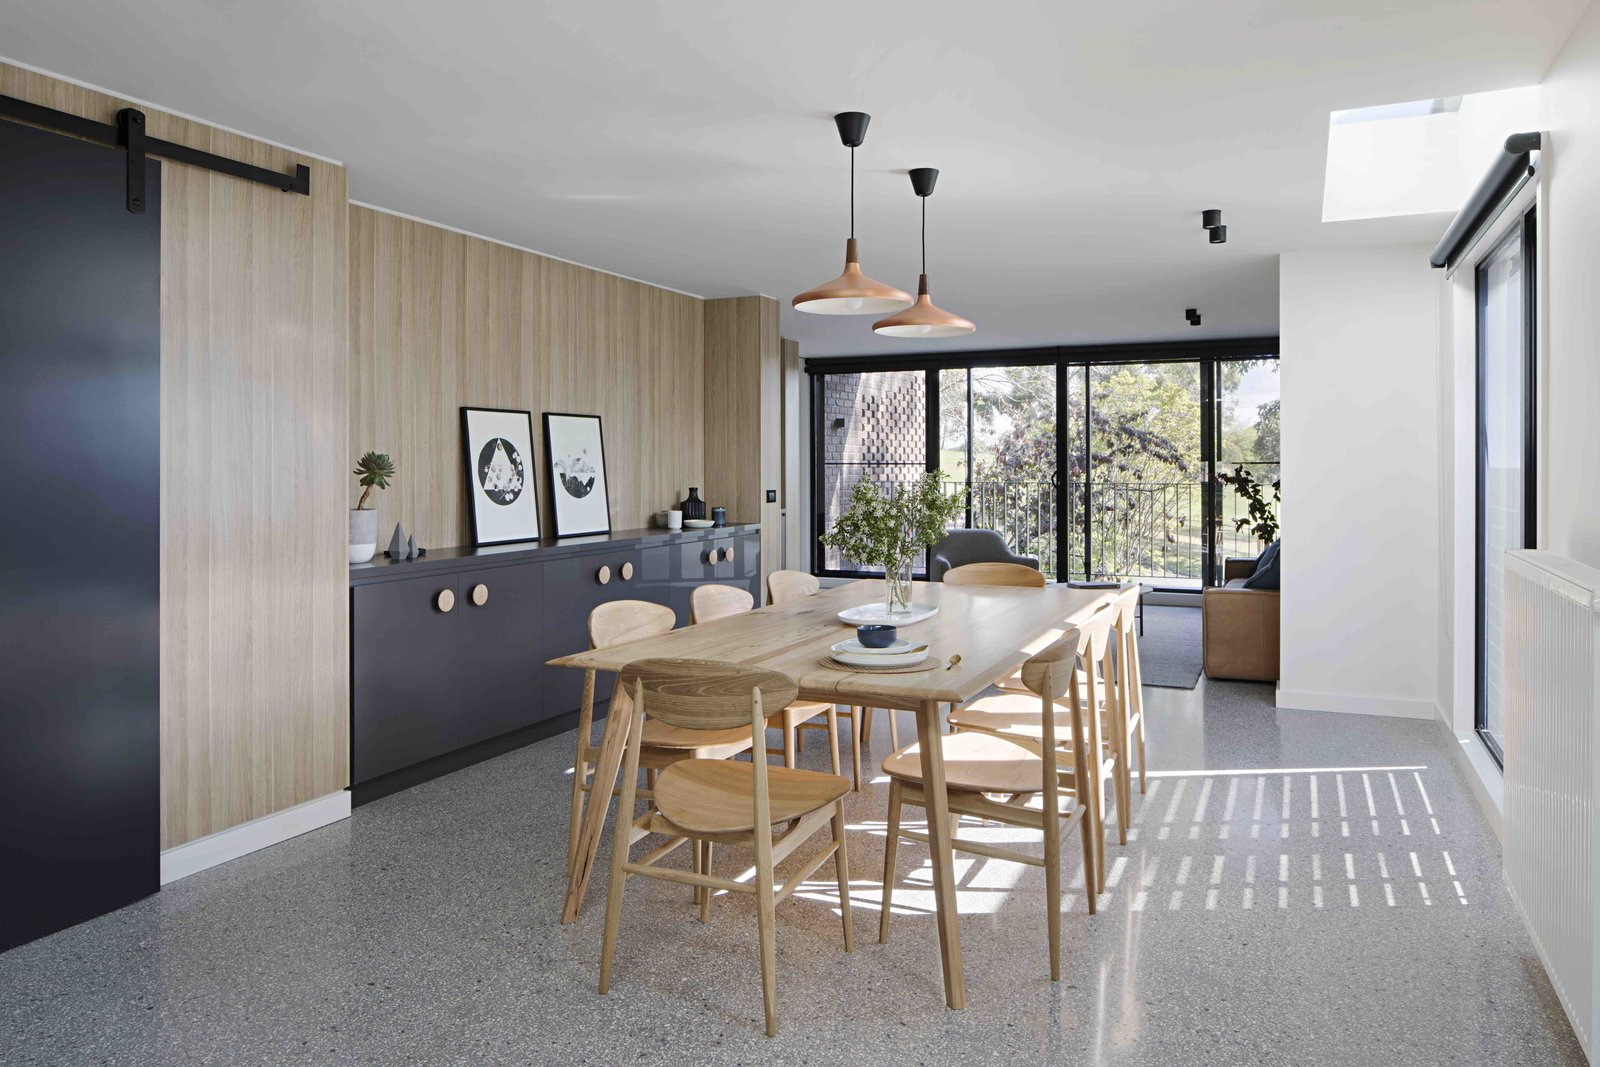 Tagged: Dining Room, Table, Chair, Storage, Pendant Lighting, and Ceiling Lighting. A Remodel Turns a Dark and Choppy House in Melbourne Into a Bright, Flexible Family Home - Photo 16 of 17